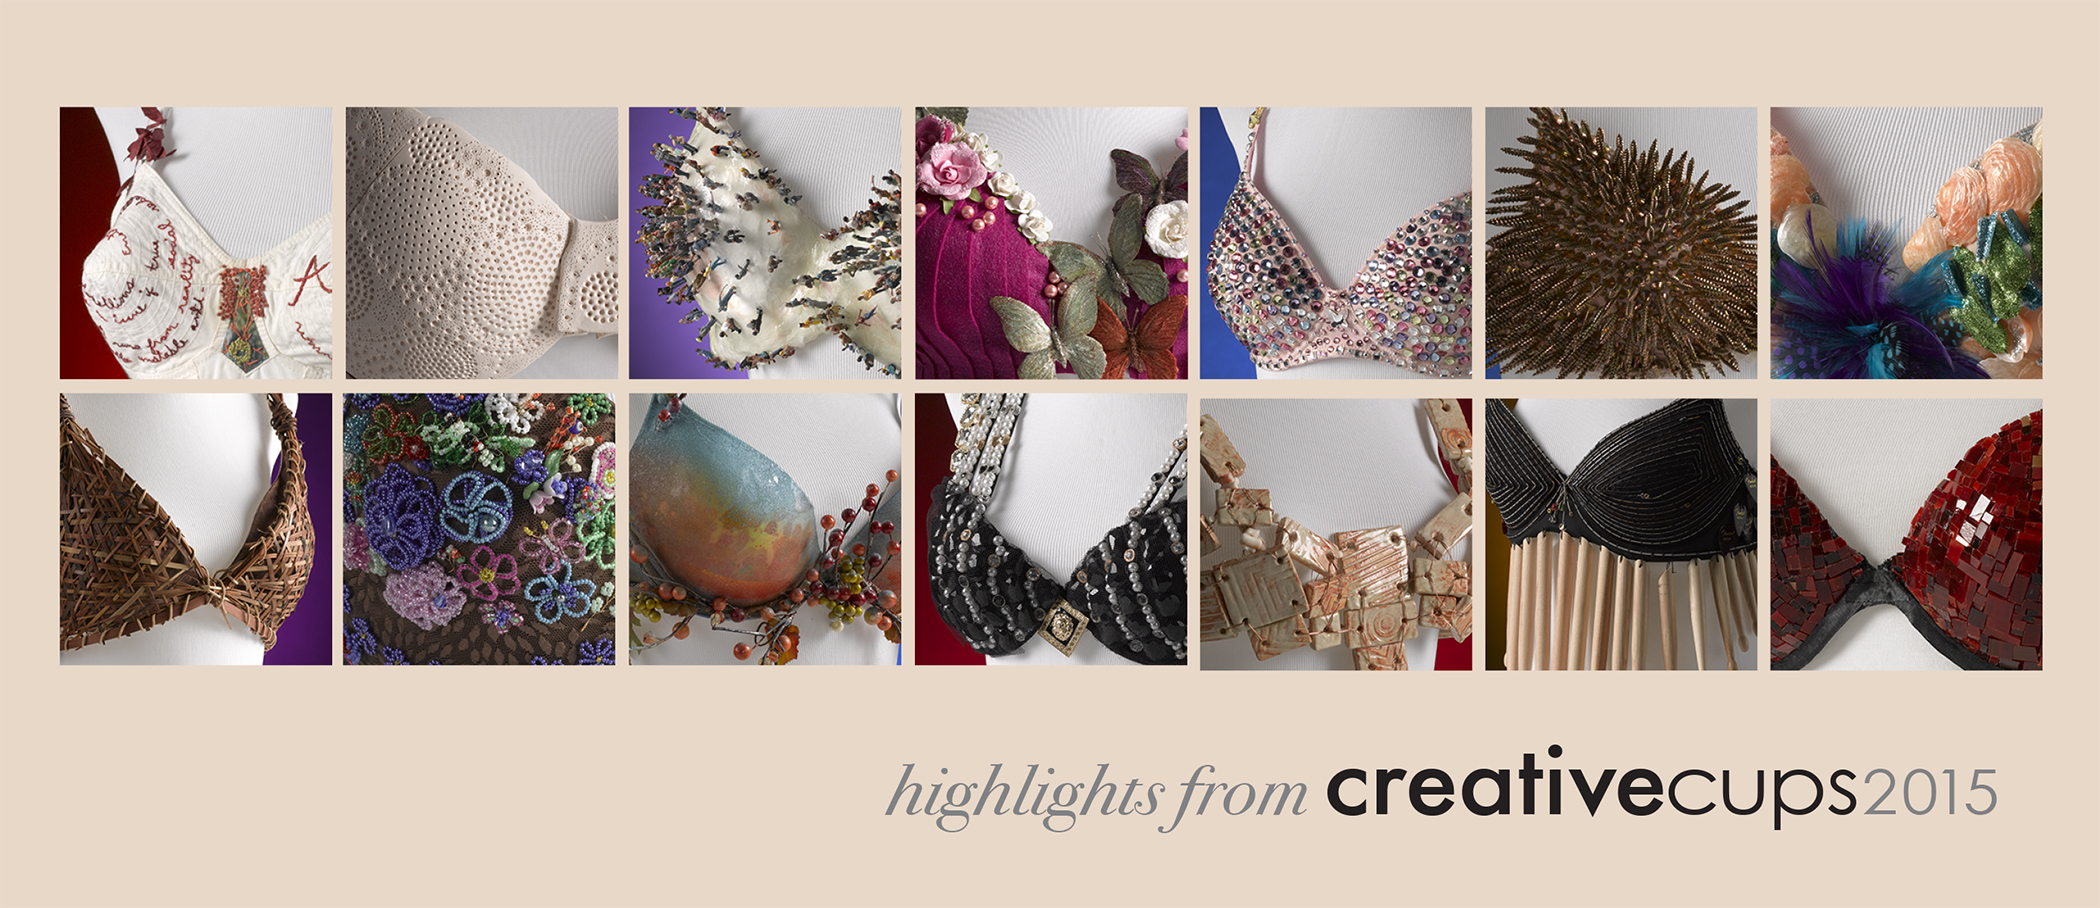 Creative Cups Highlights 2015